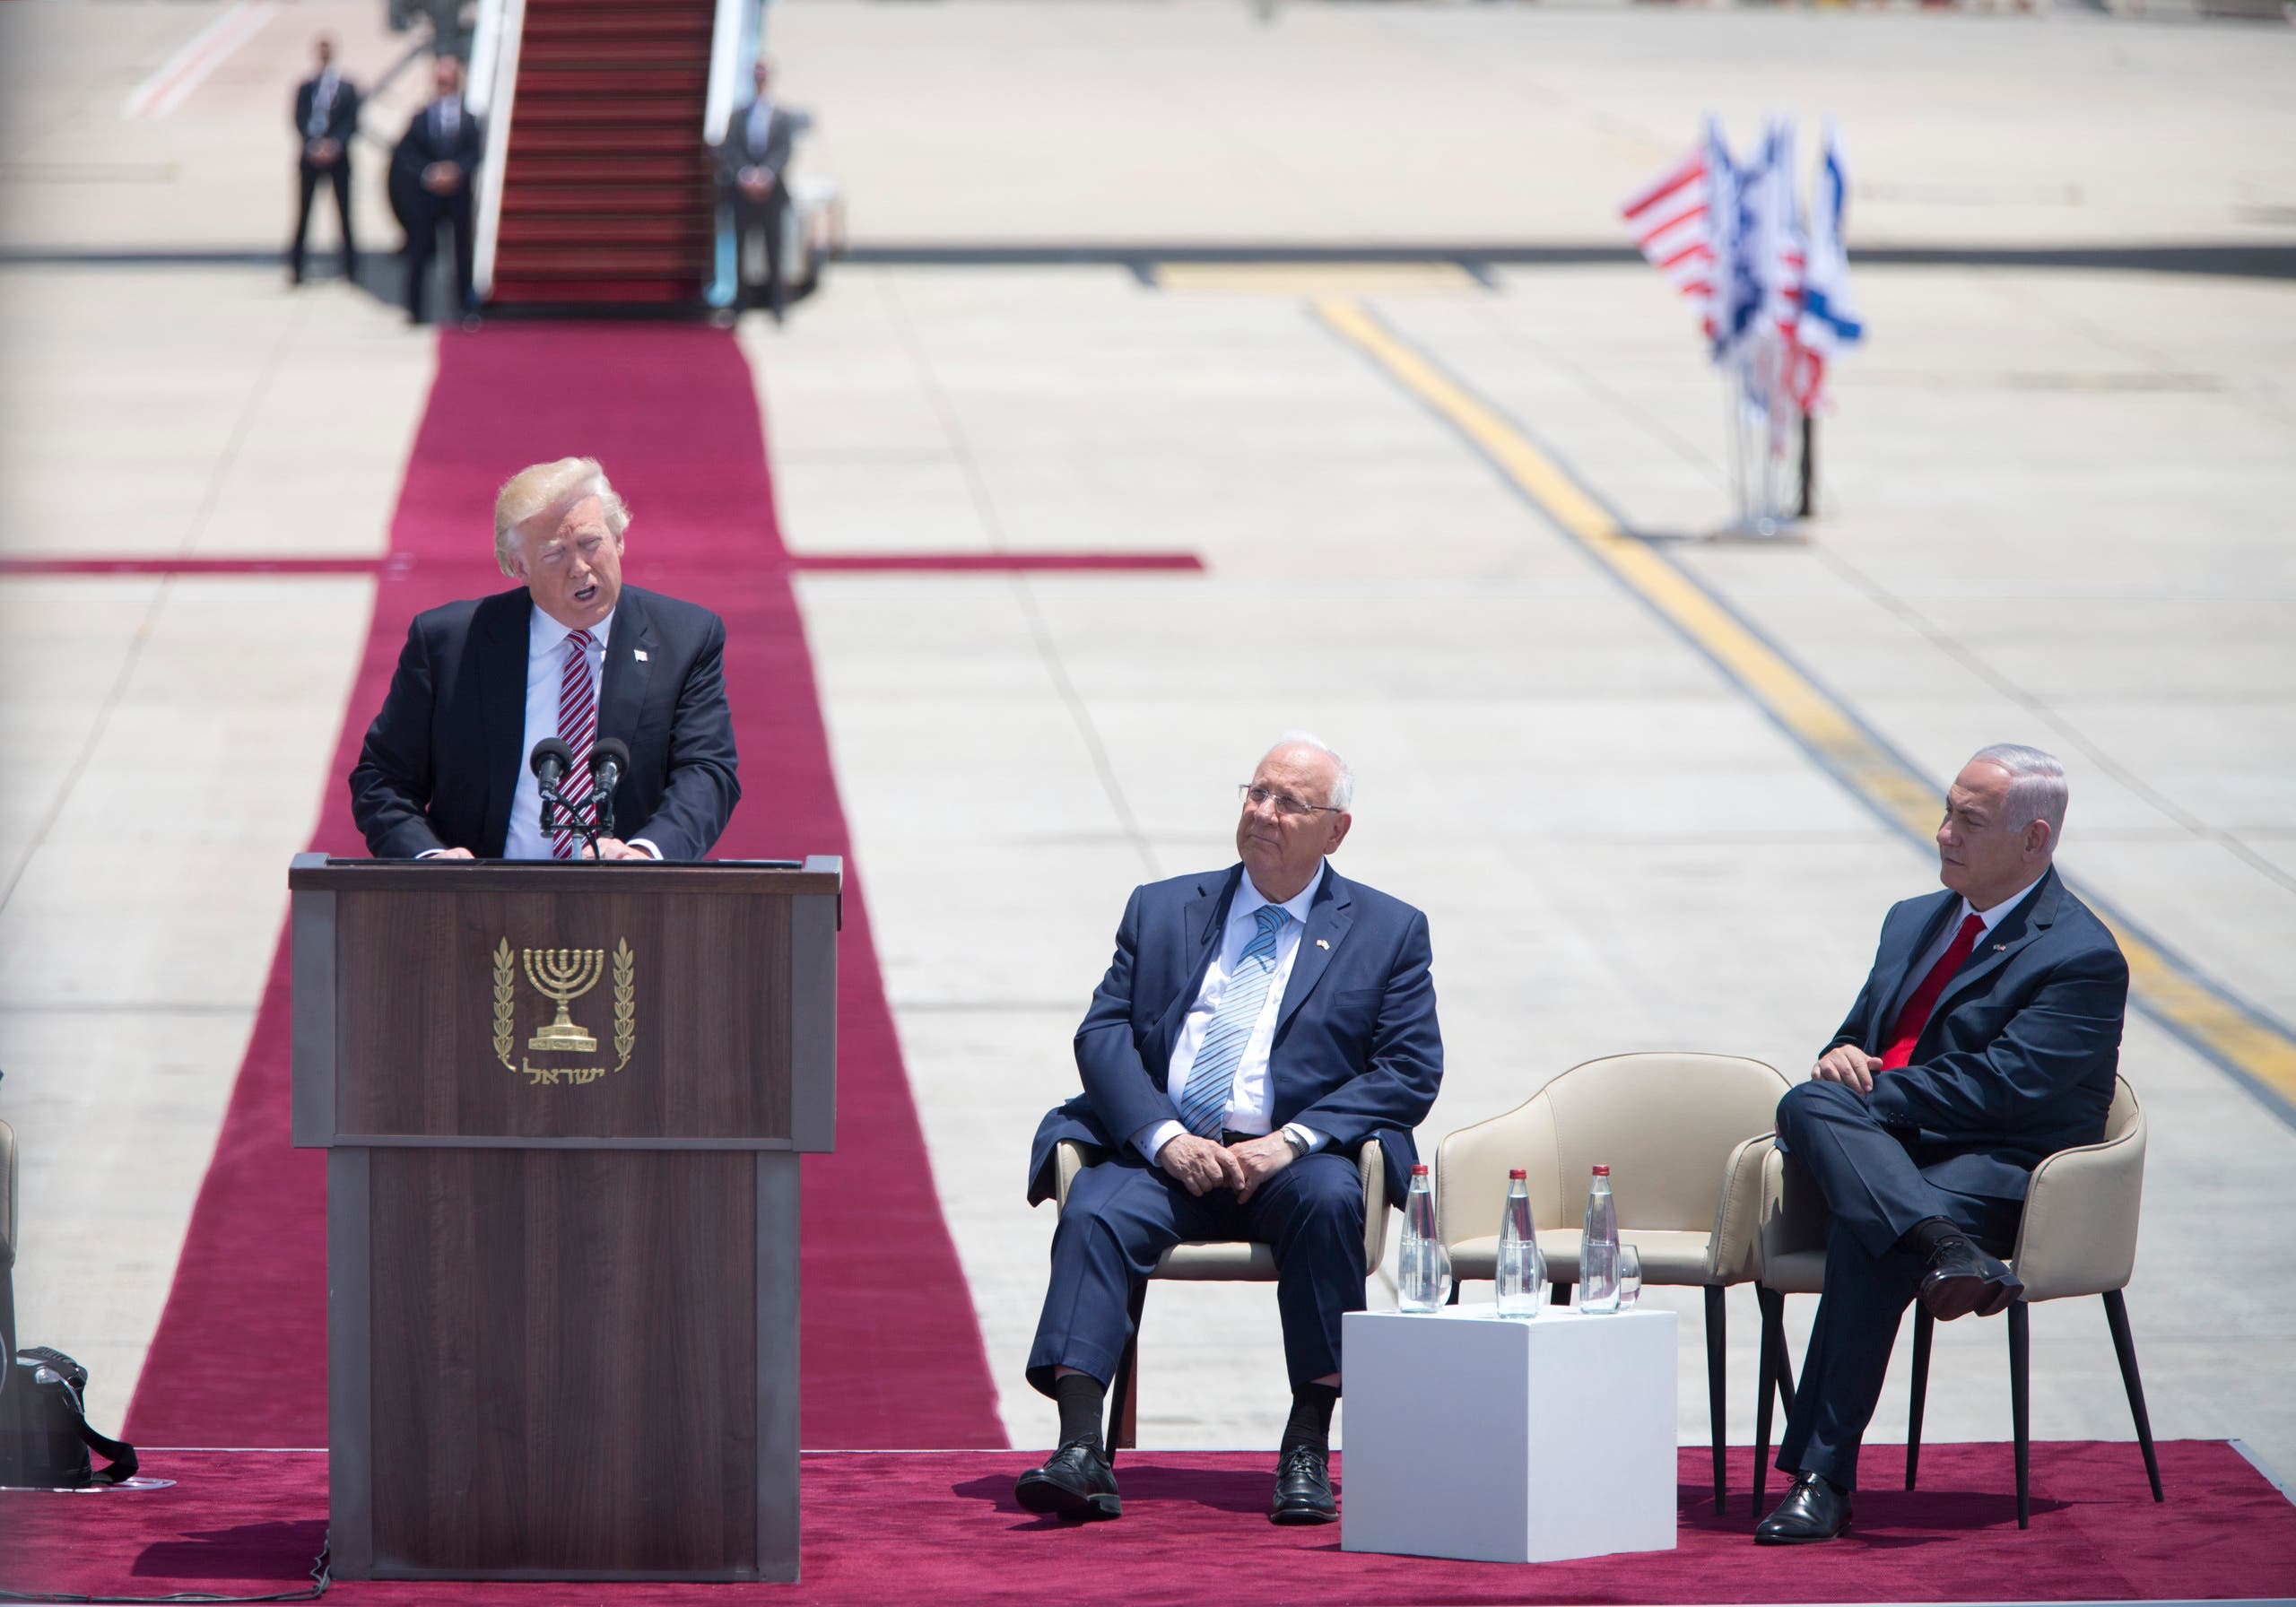 US President Donald Trump speaks during welcome ceremony in Tel Aviv, Monday, May 22,2017, accompanied by Israel's President Reuven Rivlin, center, and Prime Minister Benjamin Netanyahu. (AP